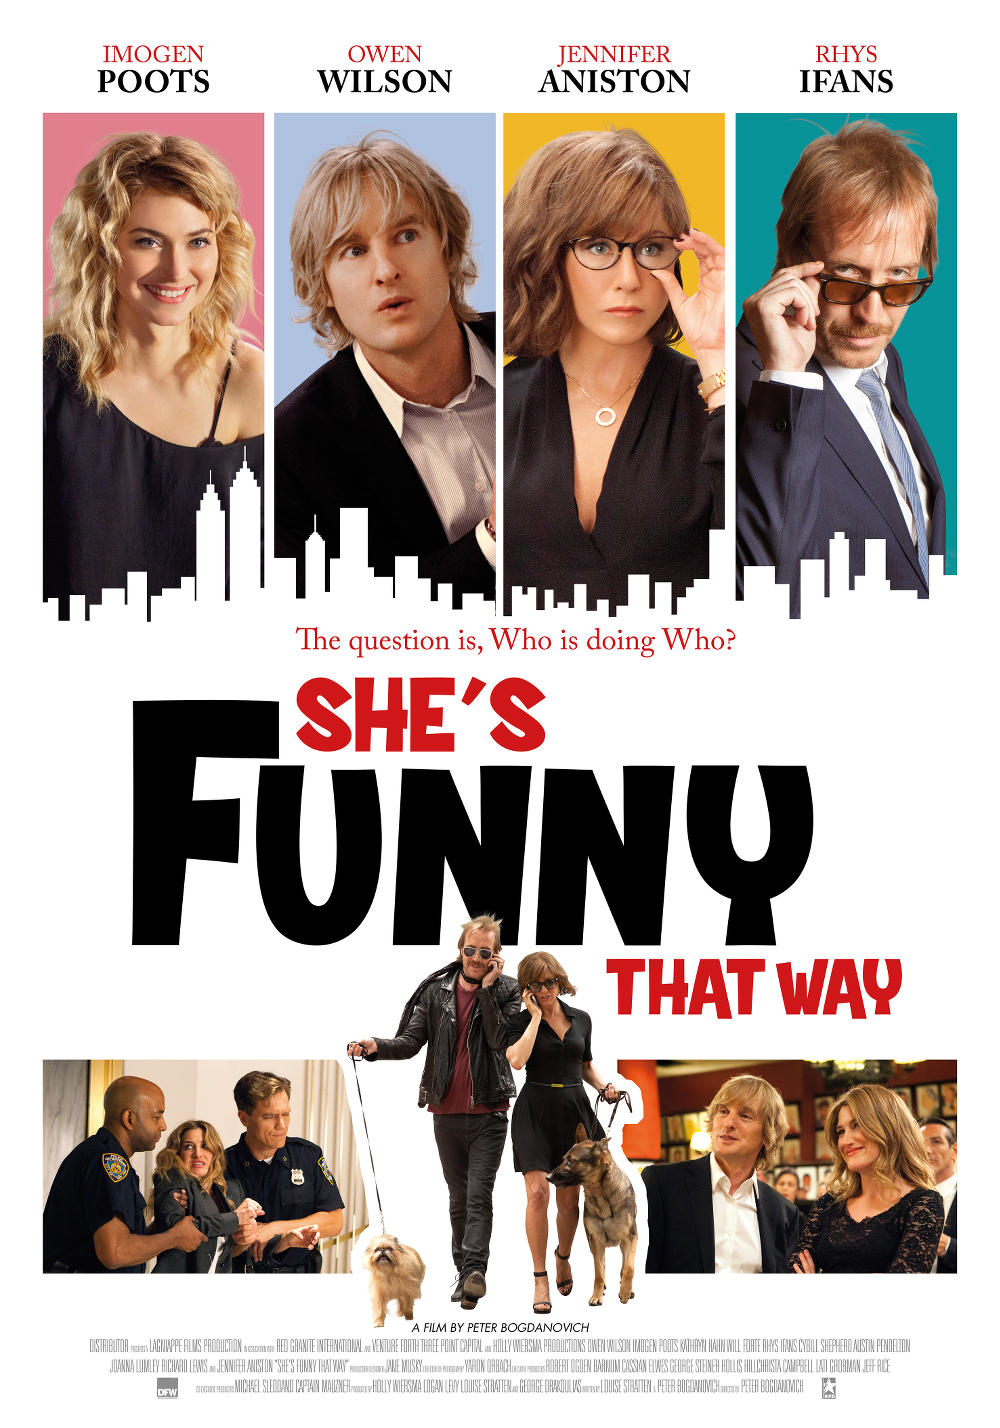 funny film review english coursework Bad company review by carin h - cool, funny follow us on social media get the latest movie reviews and updates direct to english: review of bad.